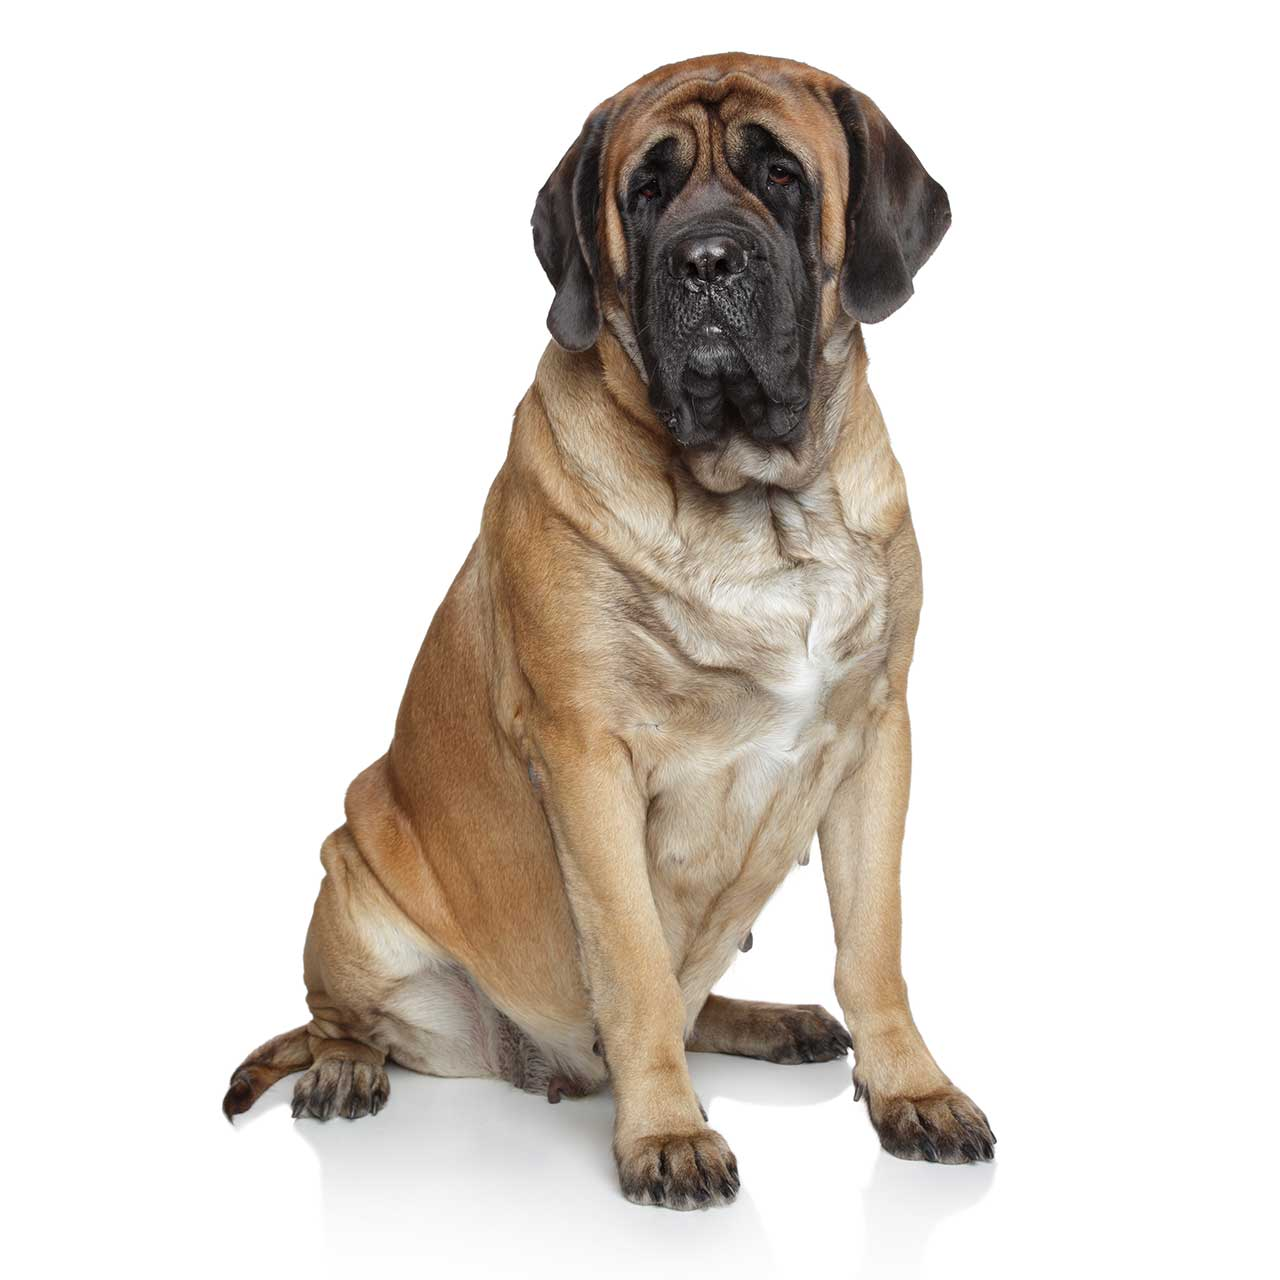 Deluxe Mastiff Photos Mastiff Dog Breed More Heaviest Dog Breed World 2016 Heaviest Dog Breed Wiki bark post Heaviest Dog Breed